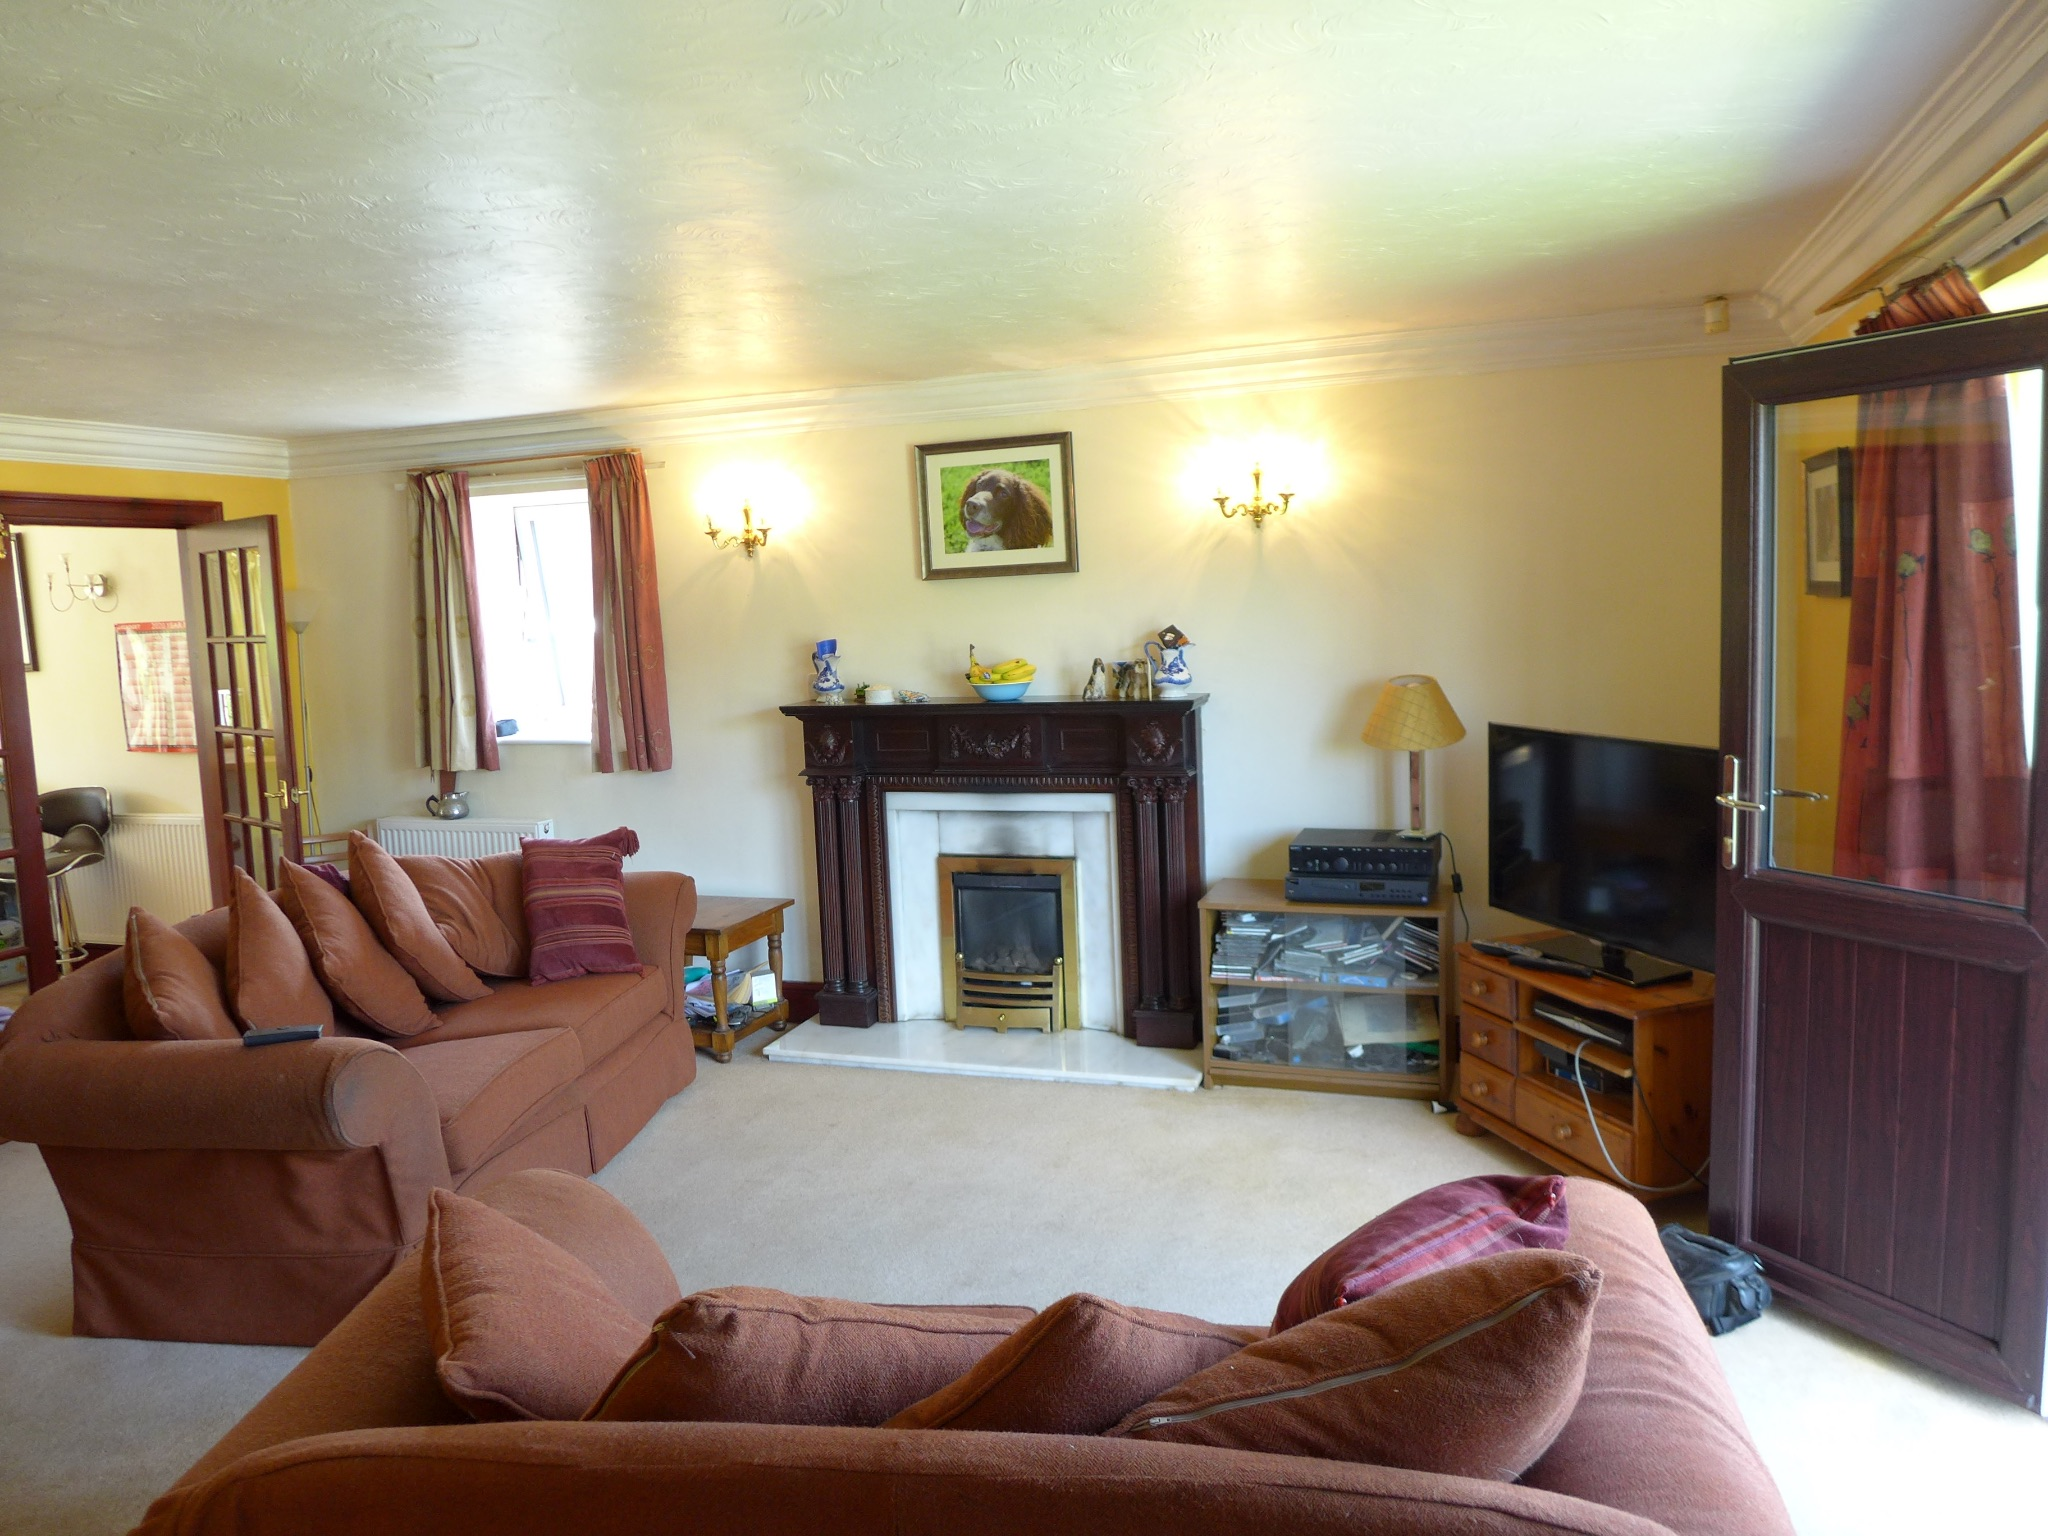 4 bedroom detached house For Sale in Todmorden - Photograph 5.